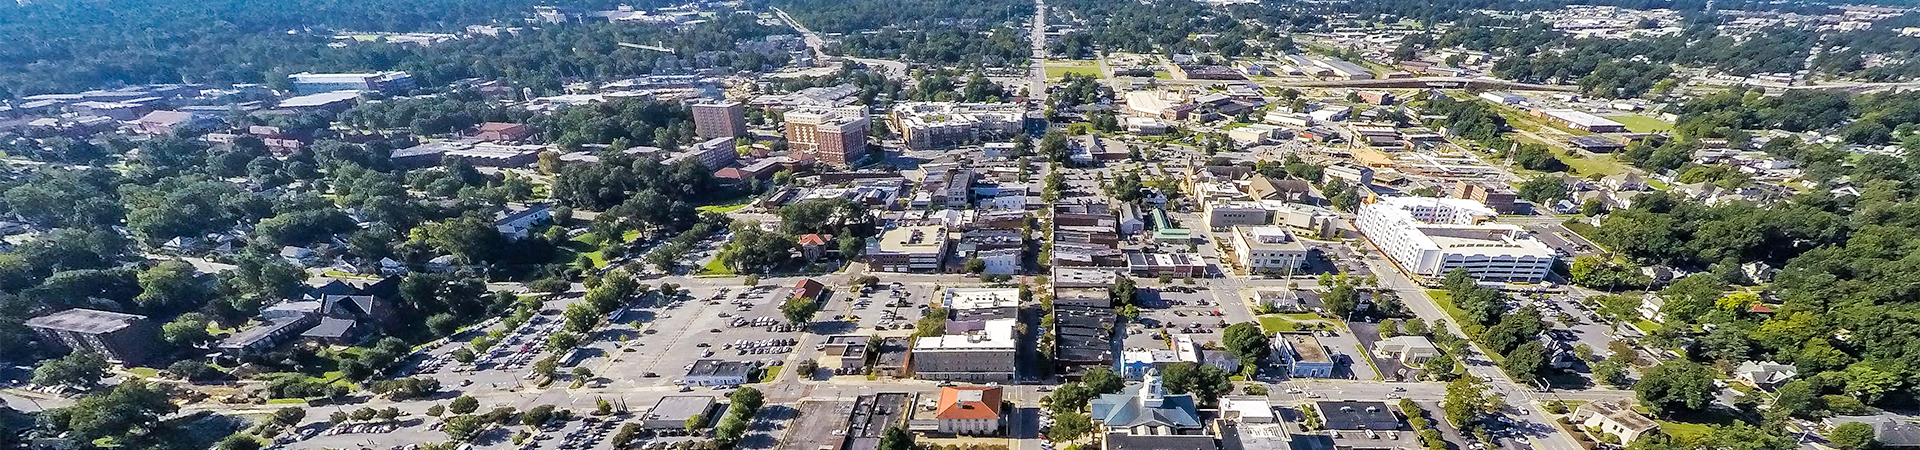 Aerial photo of Uptown District